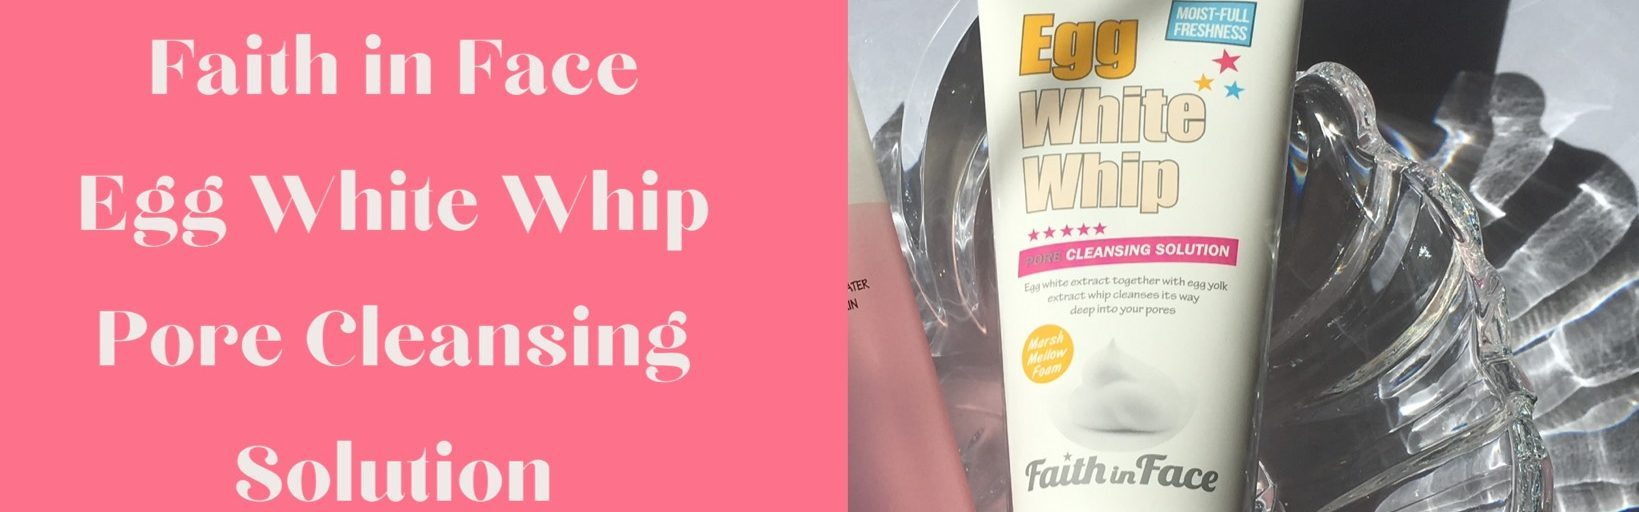 Perfect Cleanser for teens: Faith in Face Egg White Whip Pore Cleansing Solution